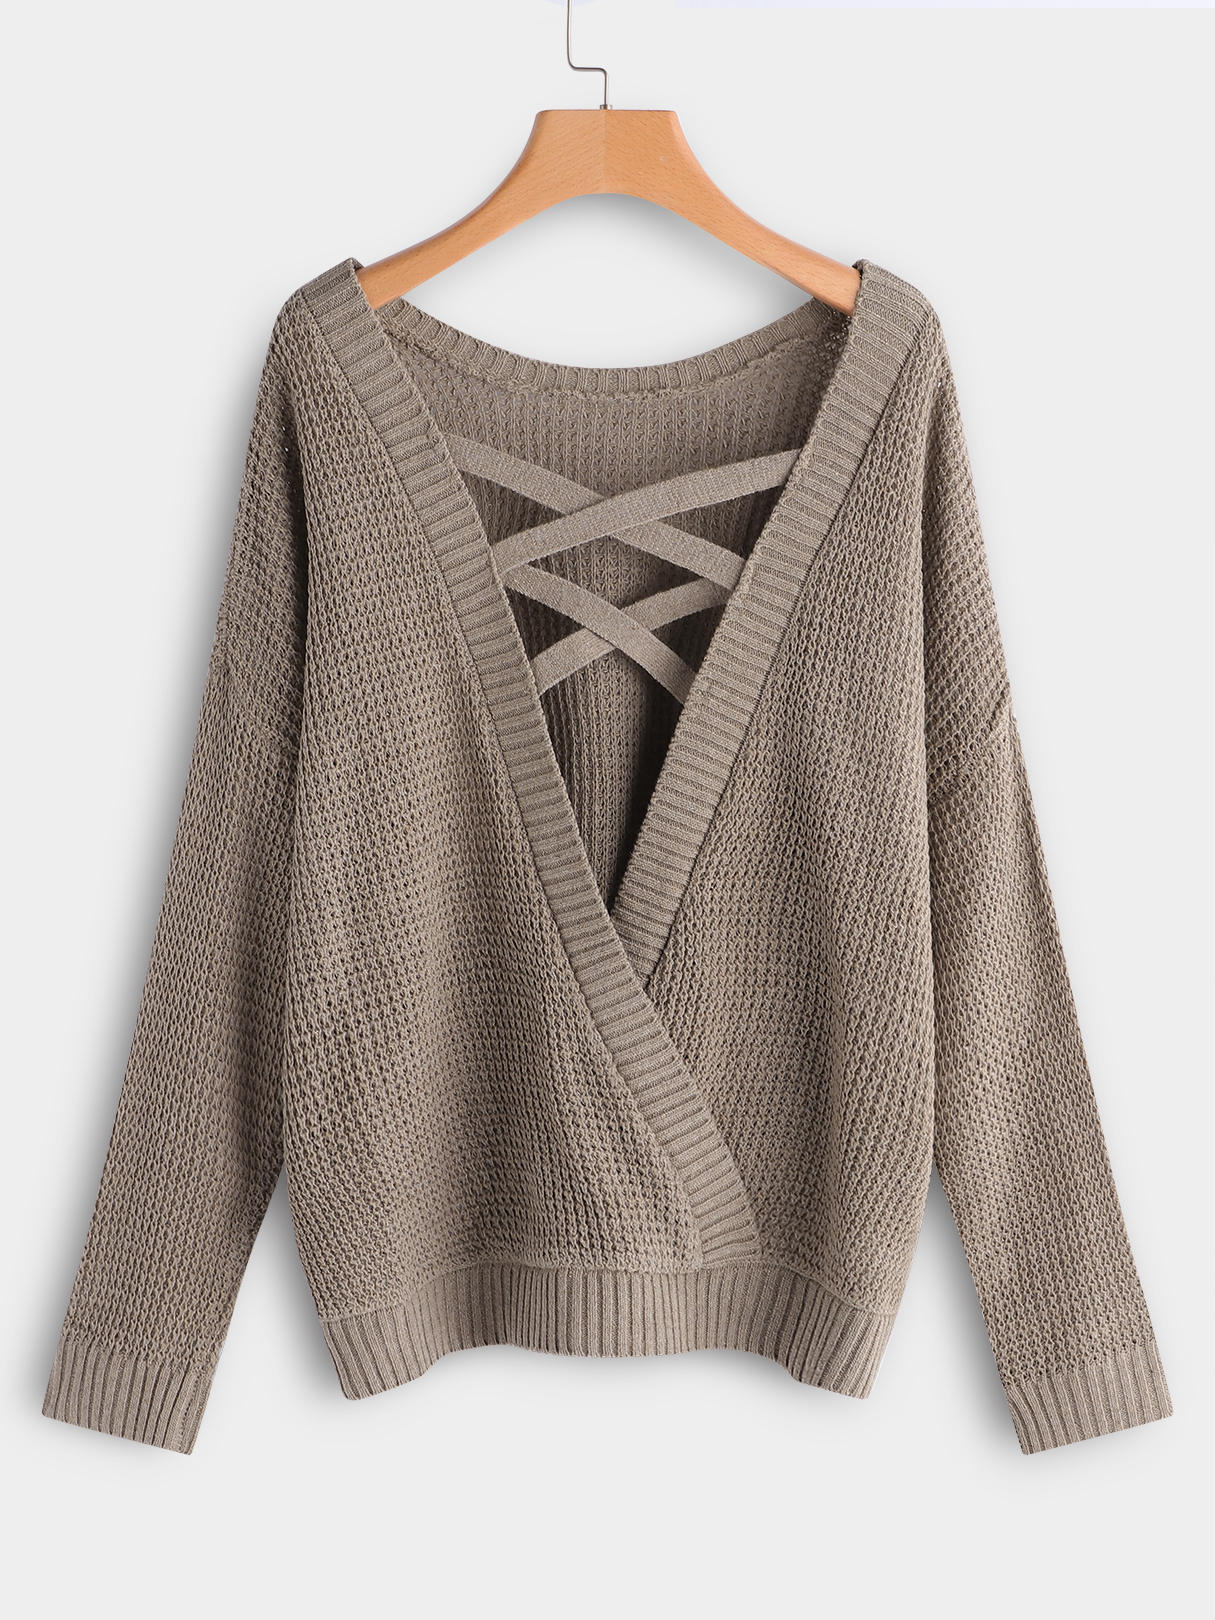 Plus Size Coffee Criss-cross Backless Design Knit Sweater